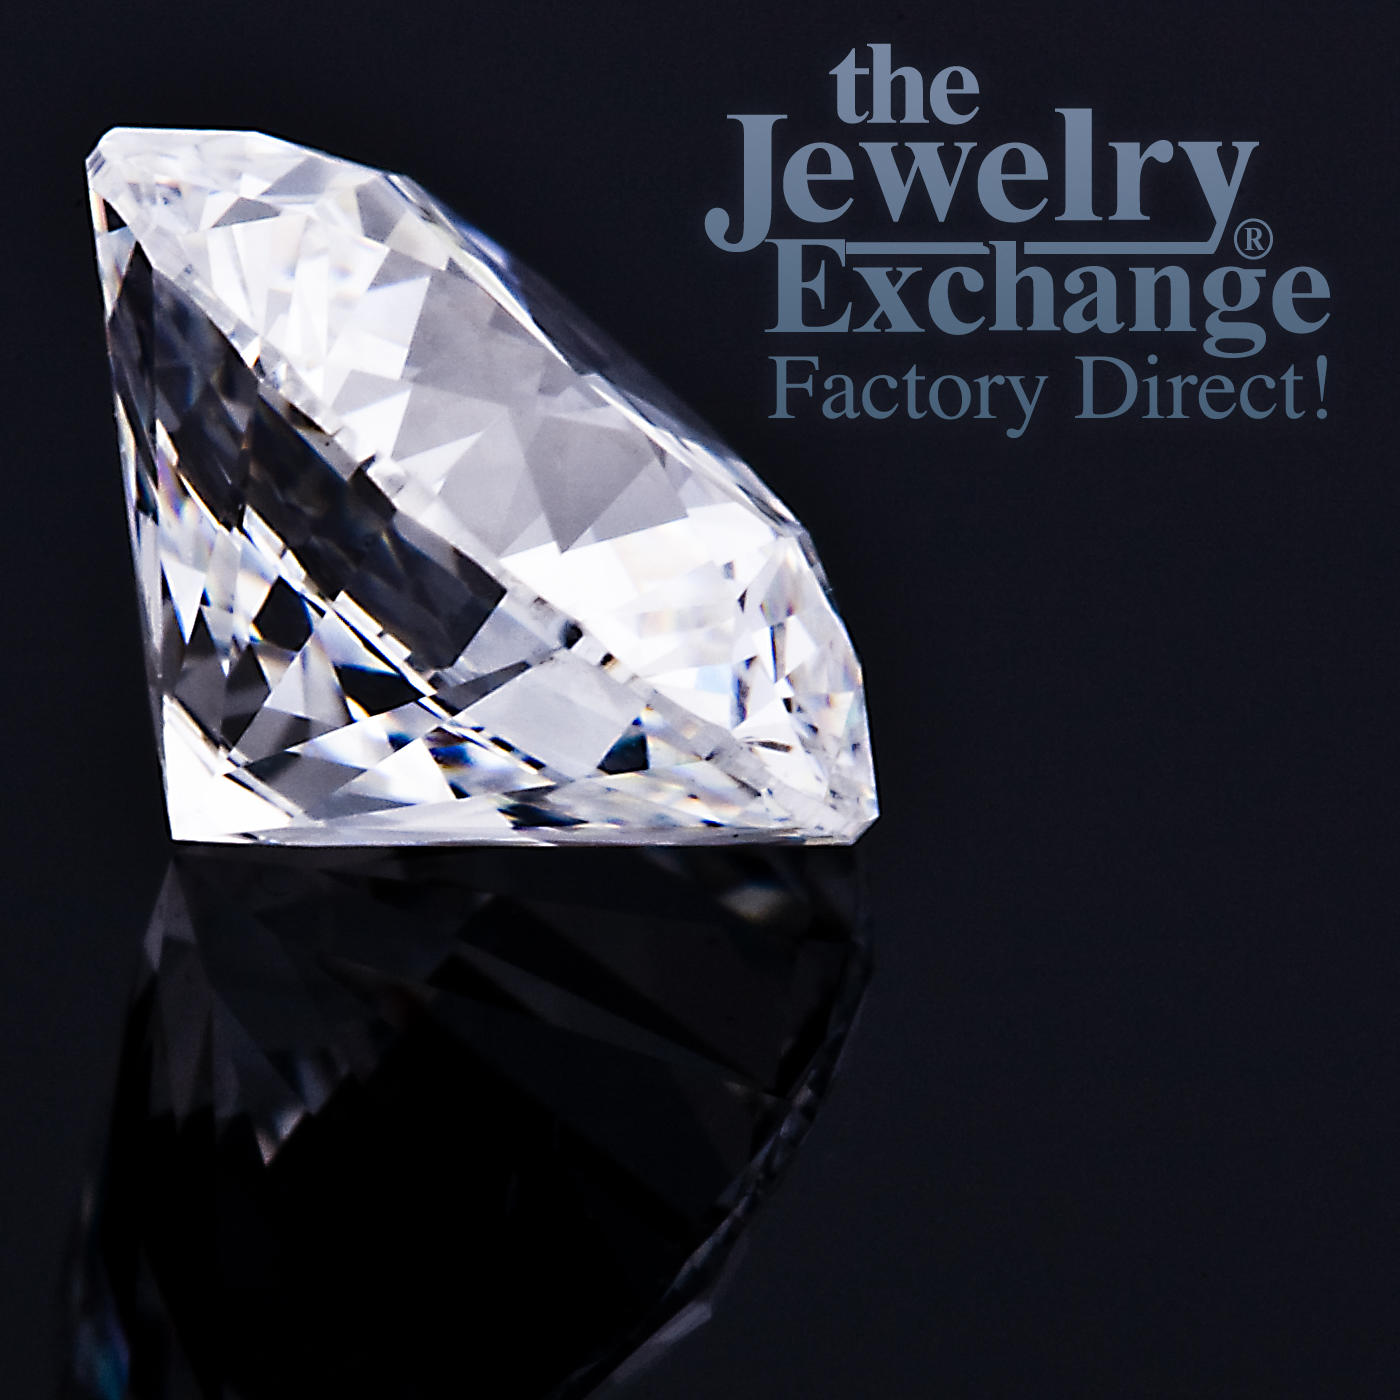 The Jewelry Exchange in New Jersey | Jewelry Store | Engagement Ring Specials image 25